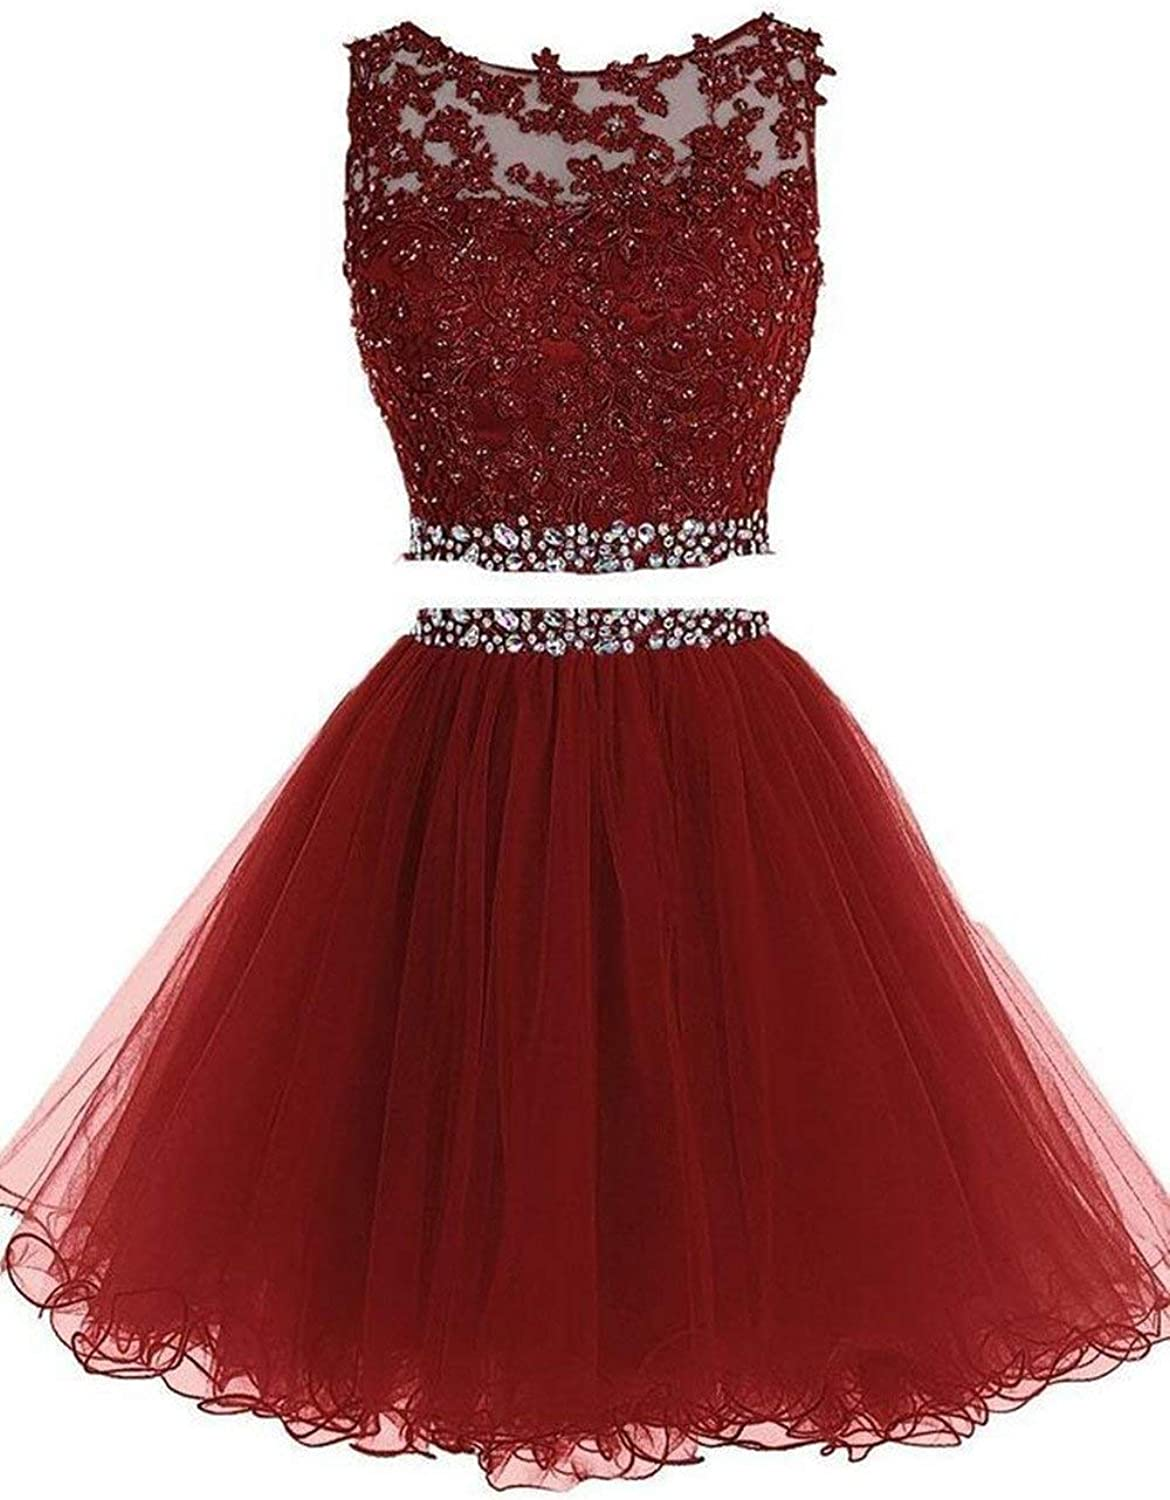 Clothfun Women's Short Beaded 2 Piece Homecoming Dresses Tulle Prom Dress Cocktail Party Gown 042